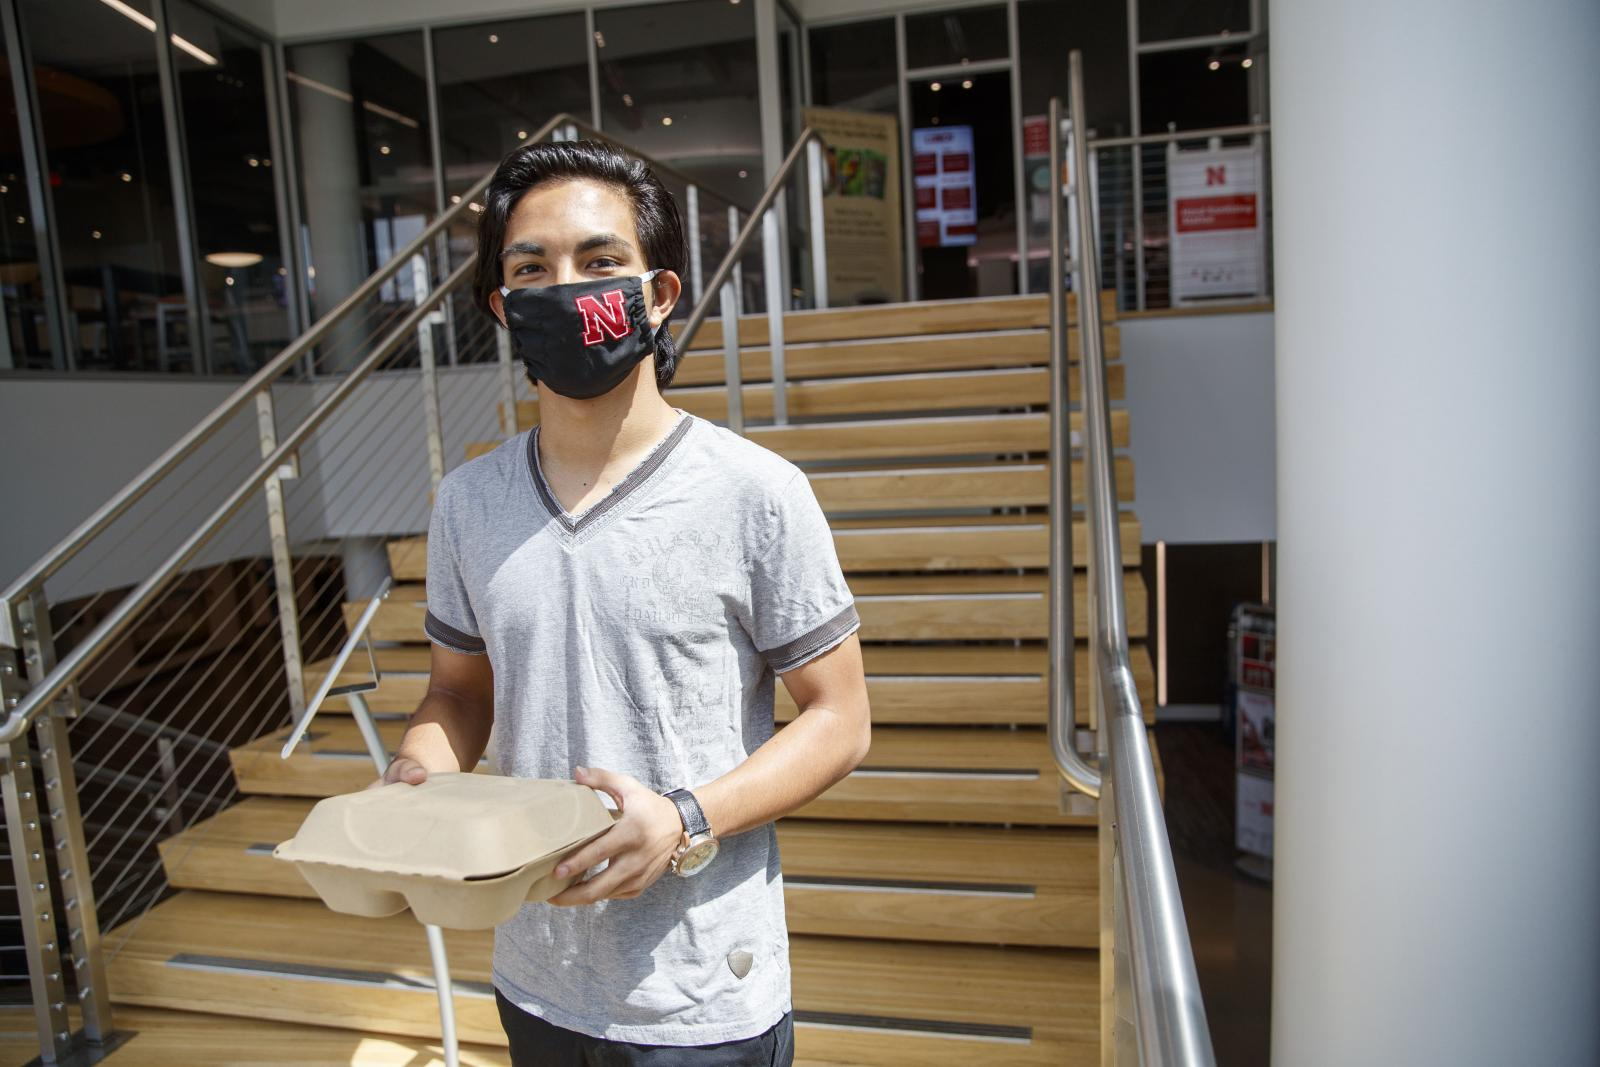 Student leaves dining center with to-go container